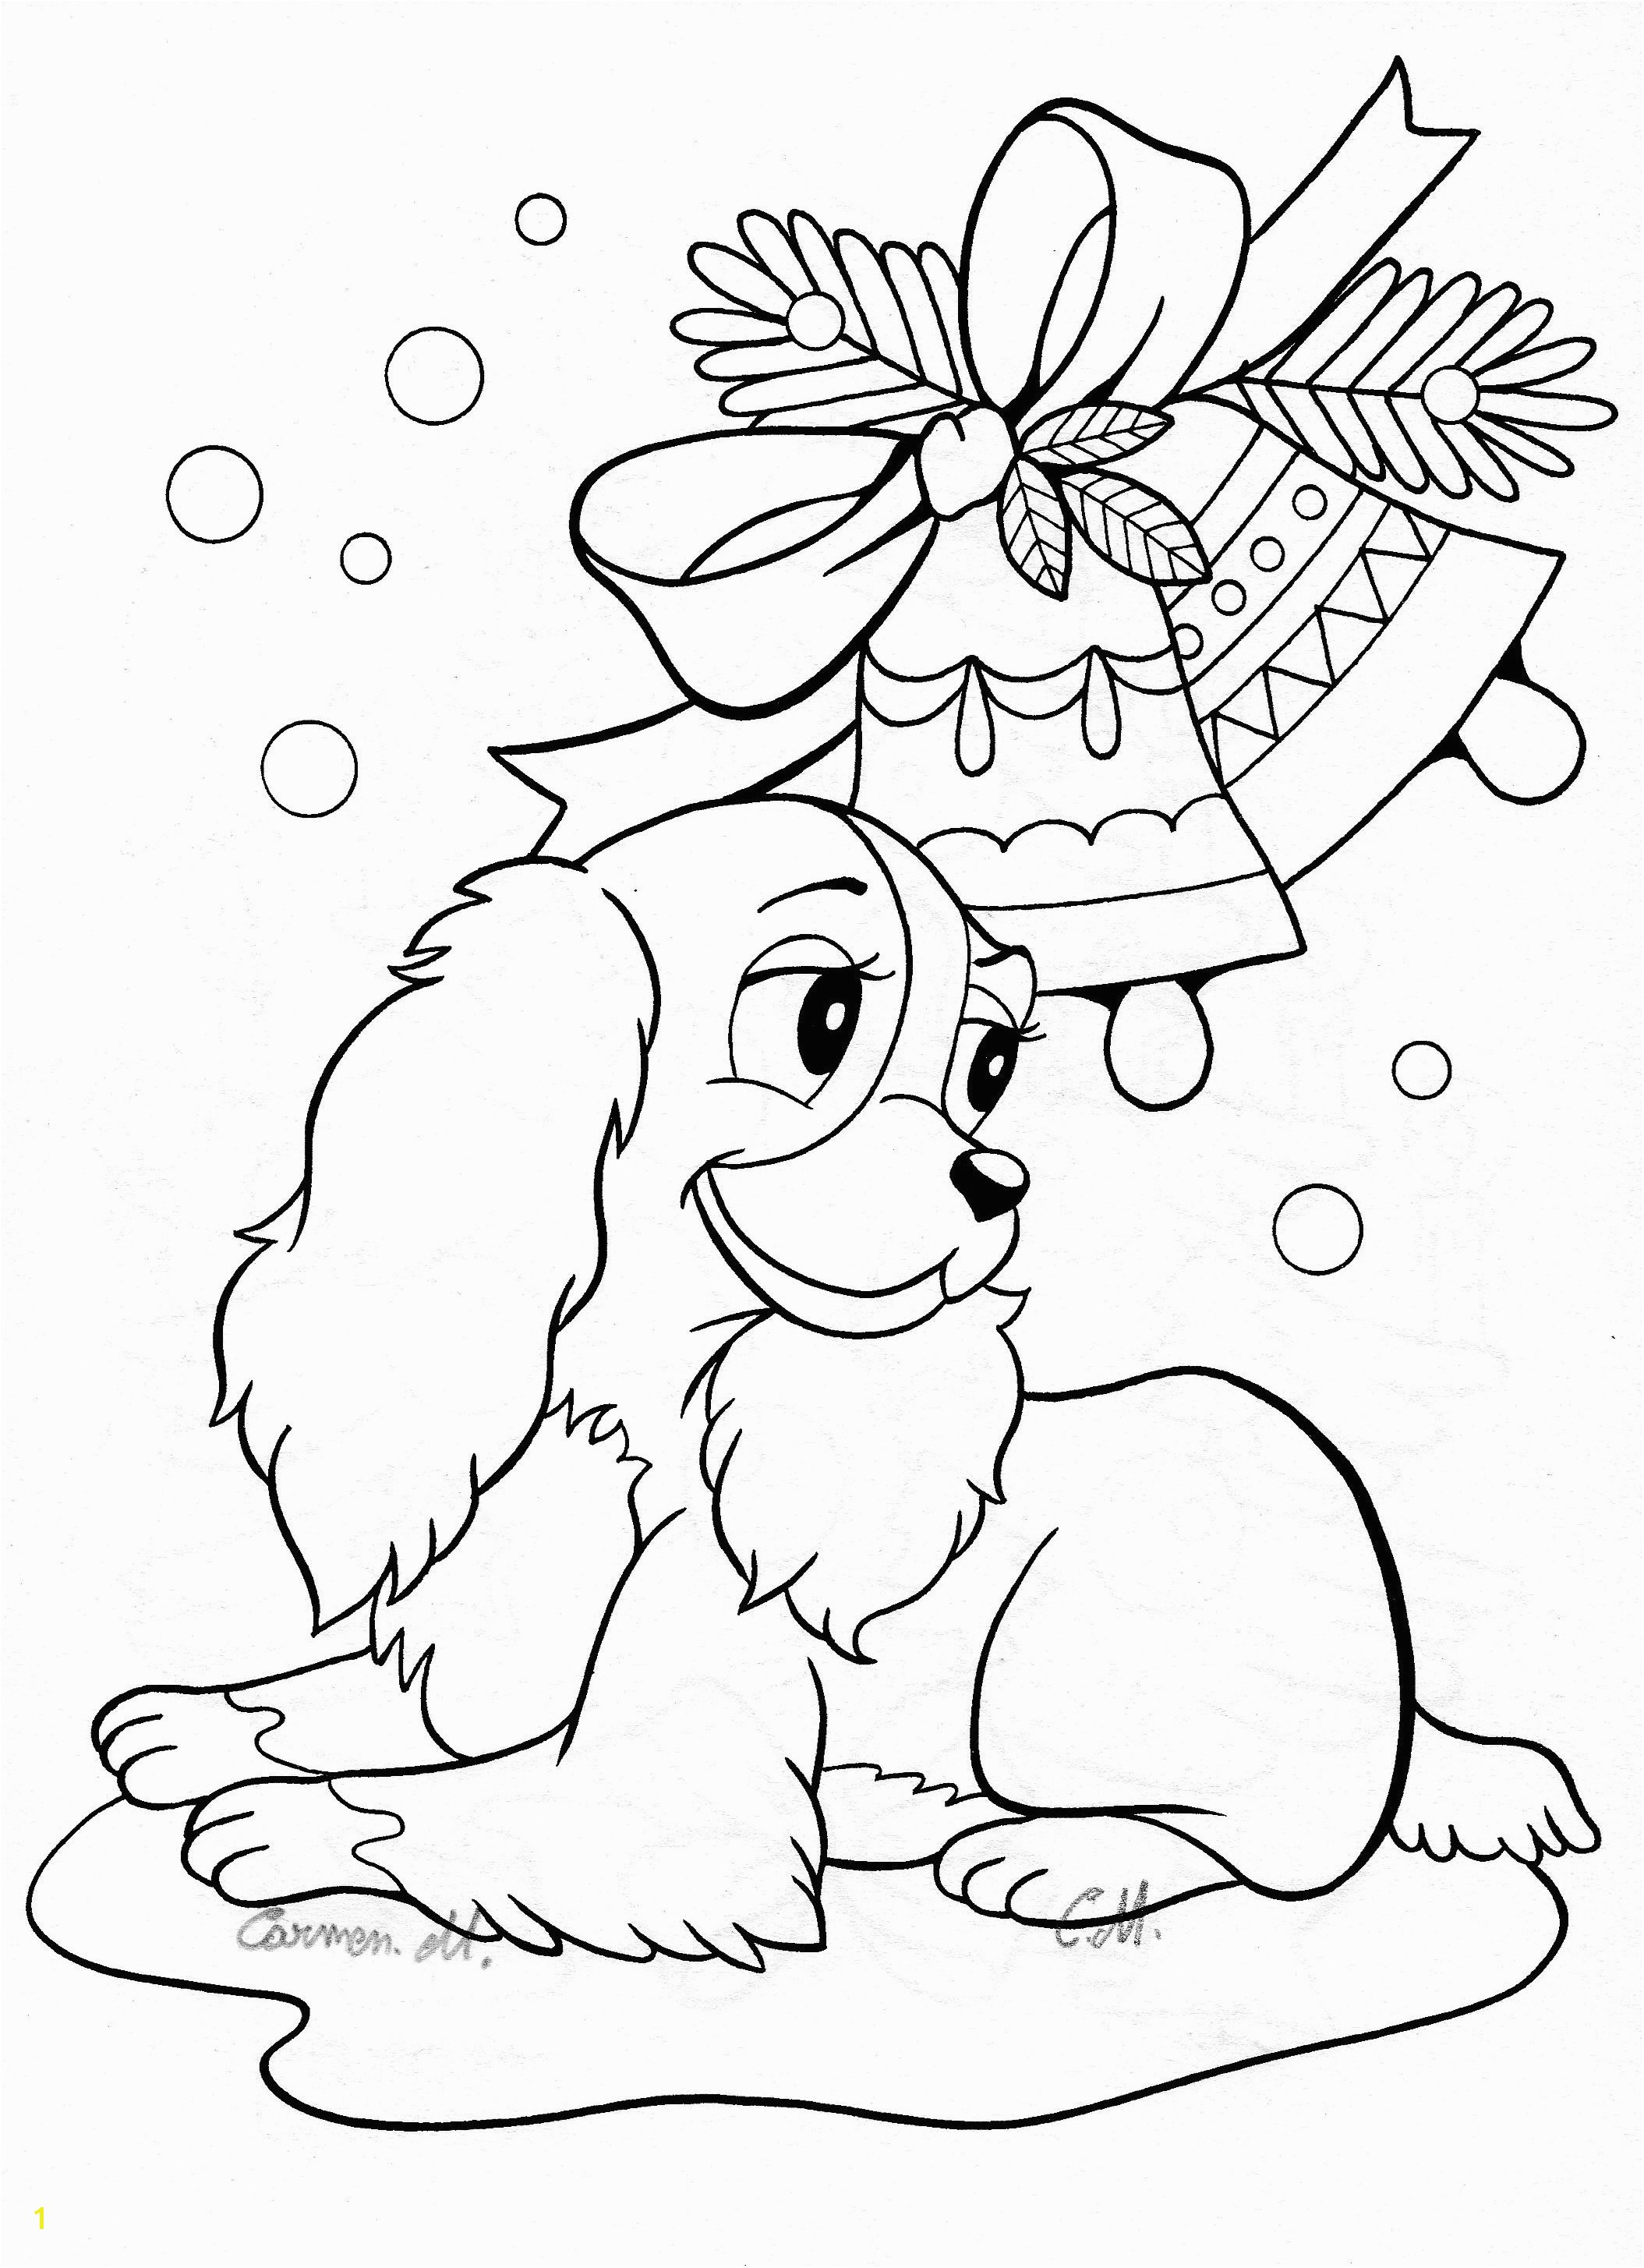 Cute Puppy Printing Coloring Pages Cute Puppy Incredible Cute Puppy Coloring Pages Lovely